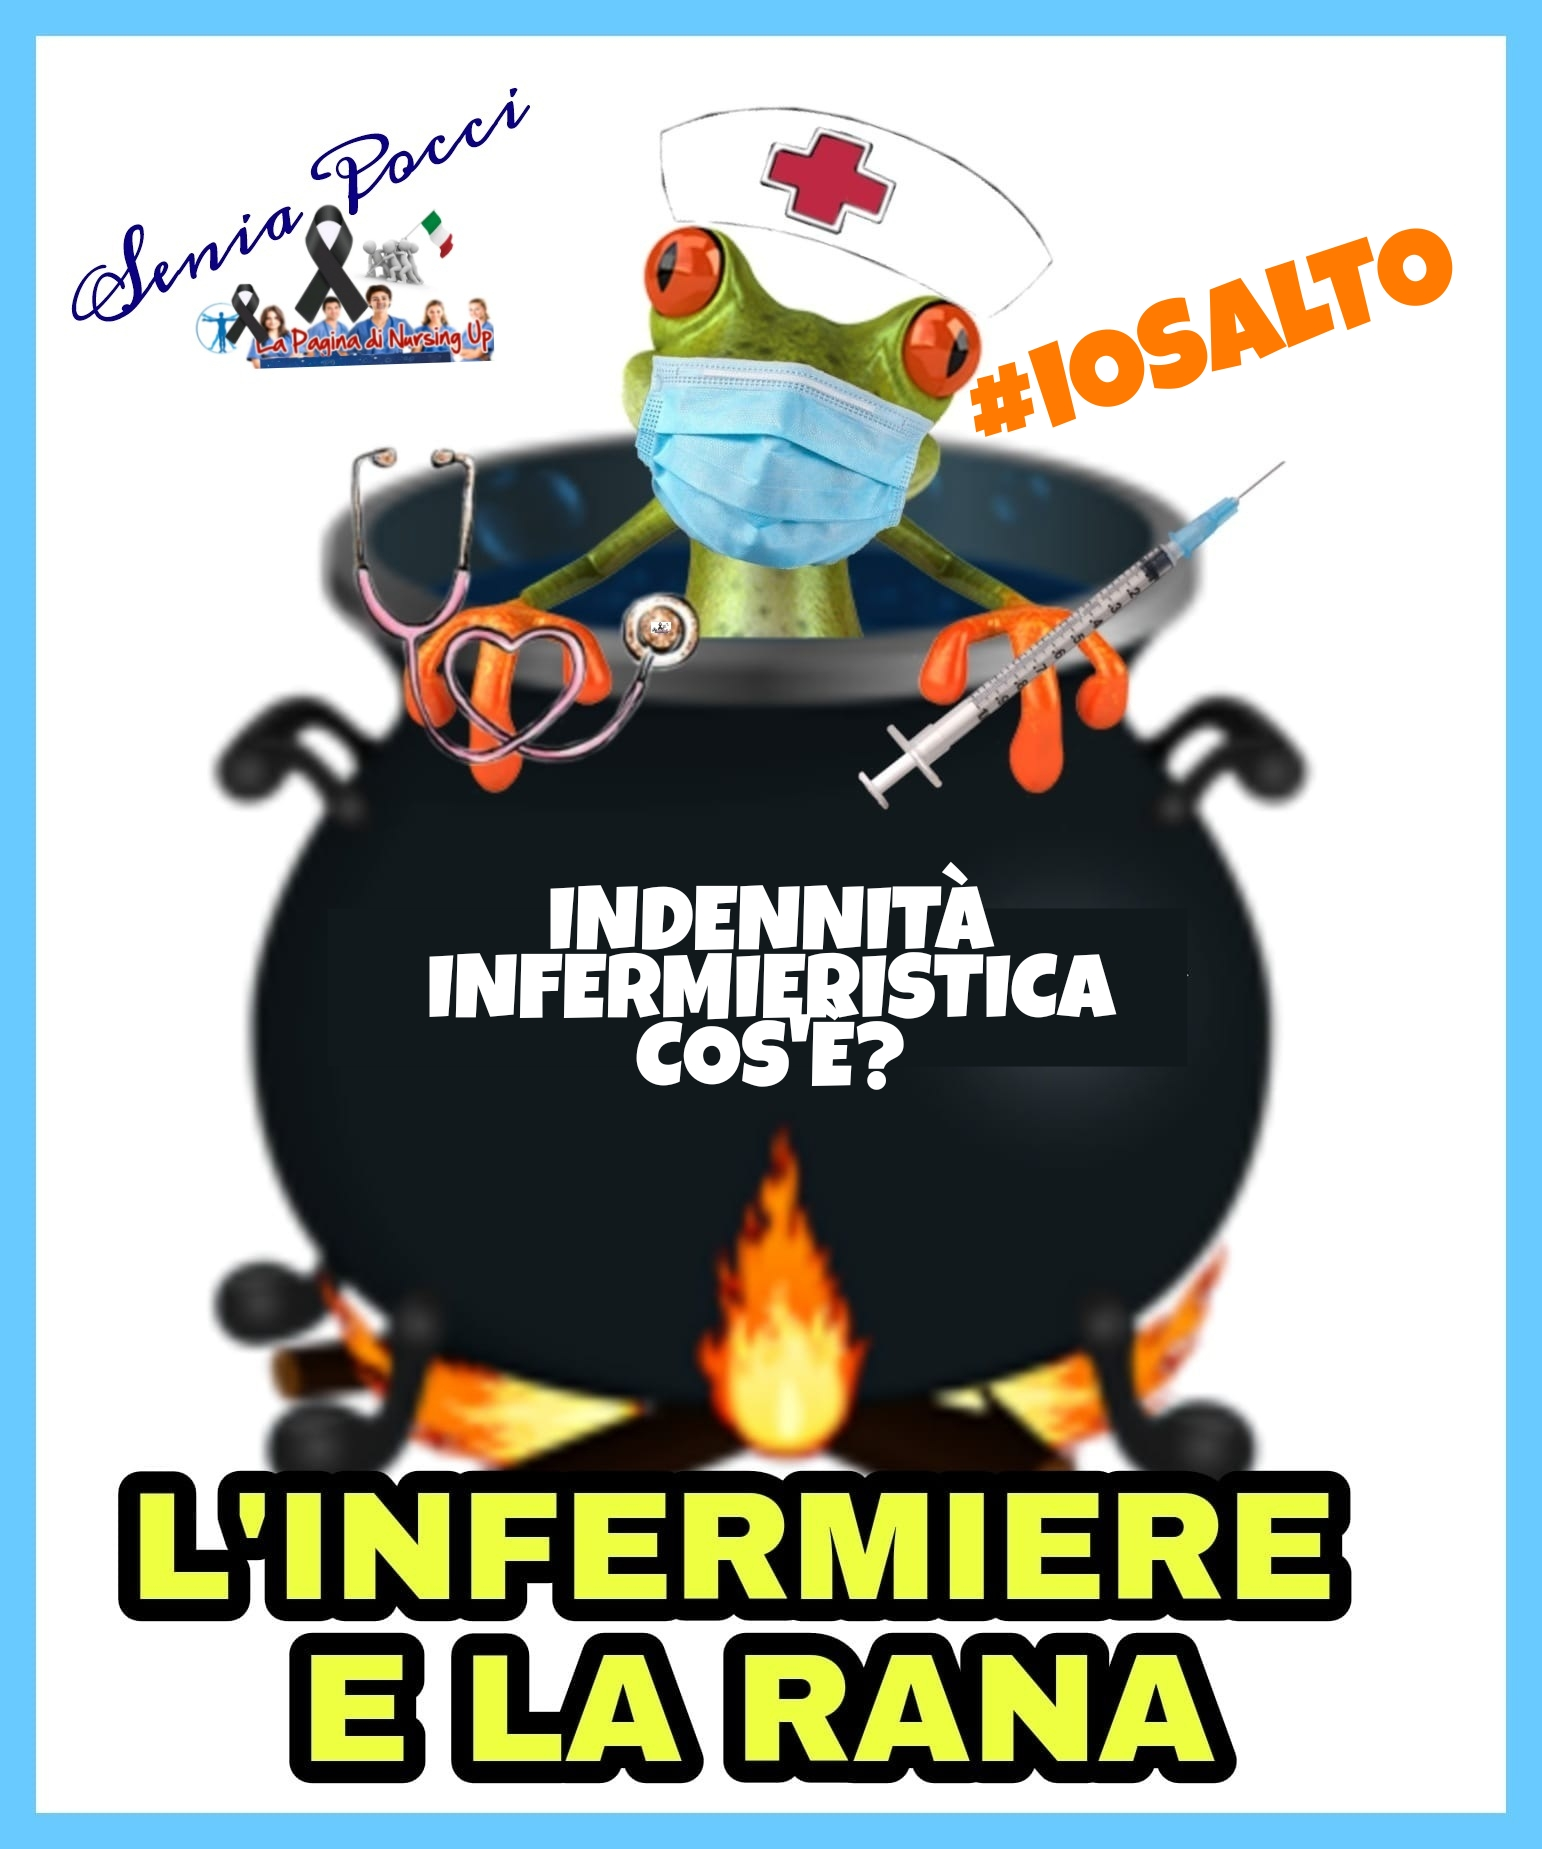 INDENNITA' INFERMIERI, MA COS'E'?